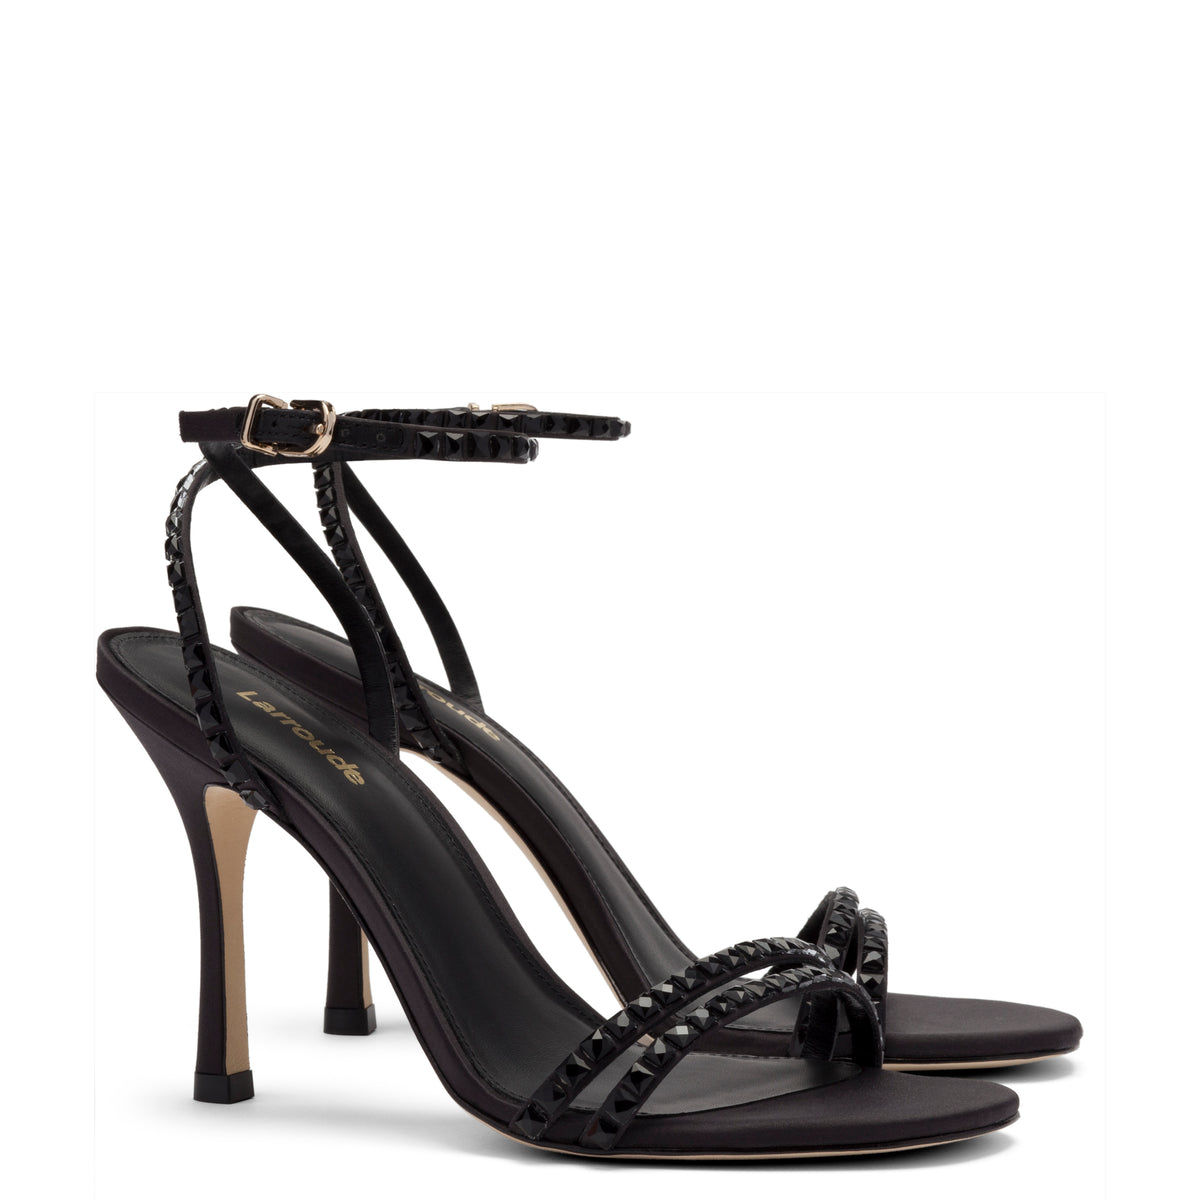 Lola Sandal In Black Satin